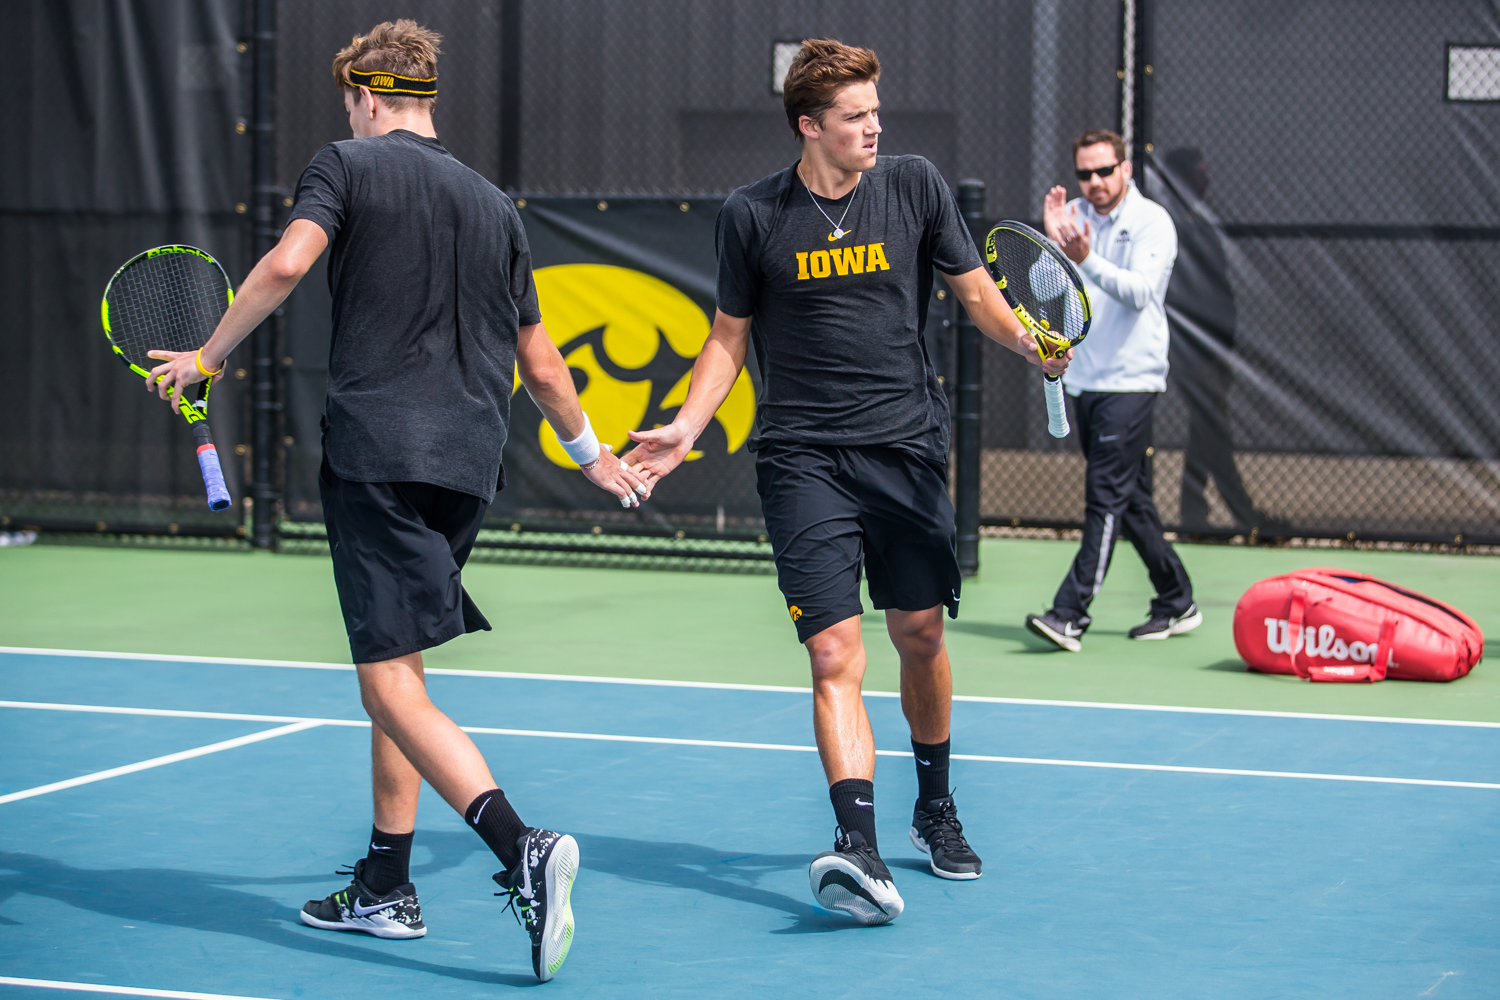 Iowa%27s+Joe+Tyler+high-fives+Nikita+Snezhko+during+a+men%27s+tennis+match+between+Iowa+and+Ohio+State+at+the+HTRC+on+Sunday%2C+April+7%2C+2019.+The+Buckeyes+defeated+the+Hawkeyes%2C+4-1.